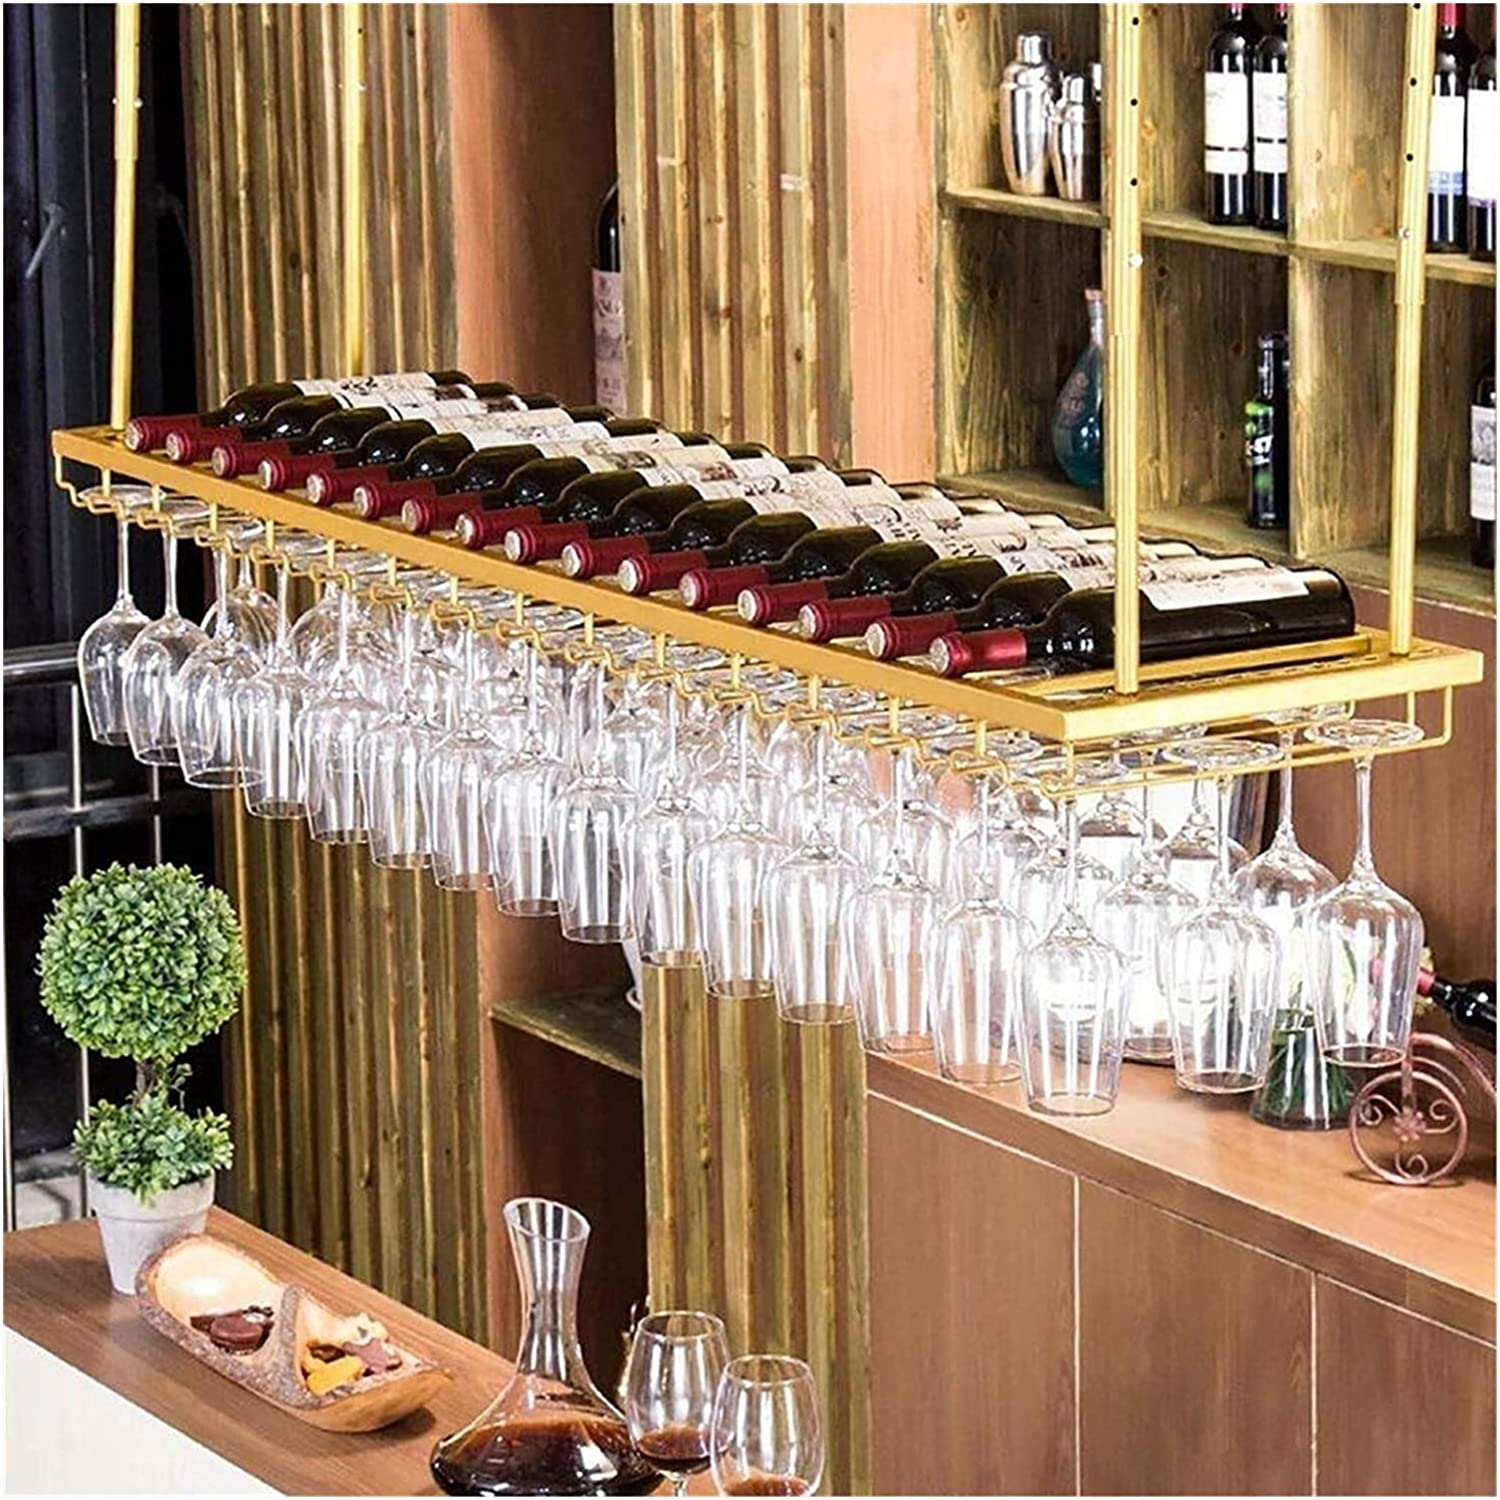 LXYYY Wine Rack Ceiling San Diego Mall Holder Same day shipping Hanging Bottle